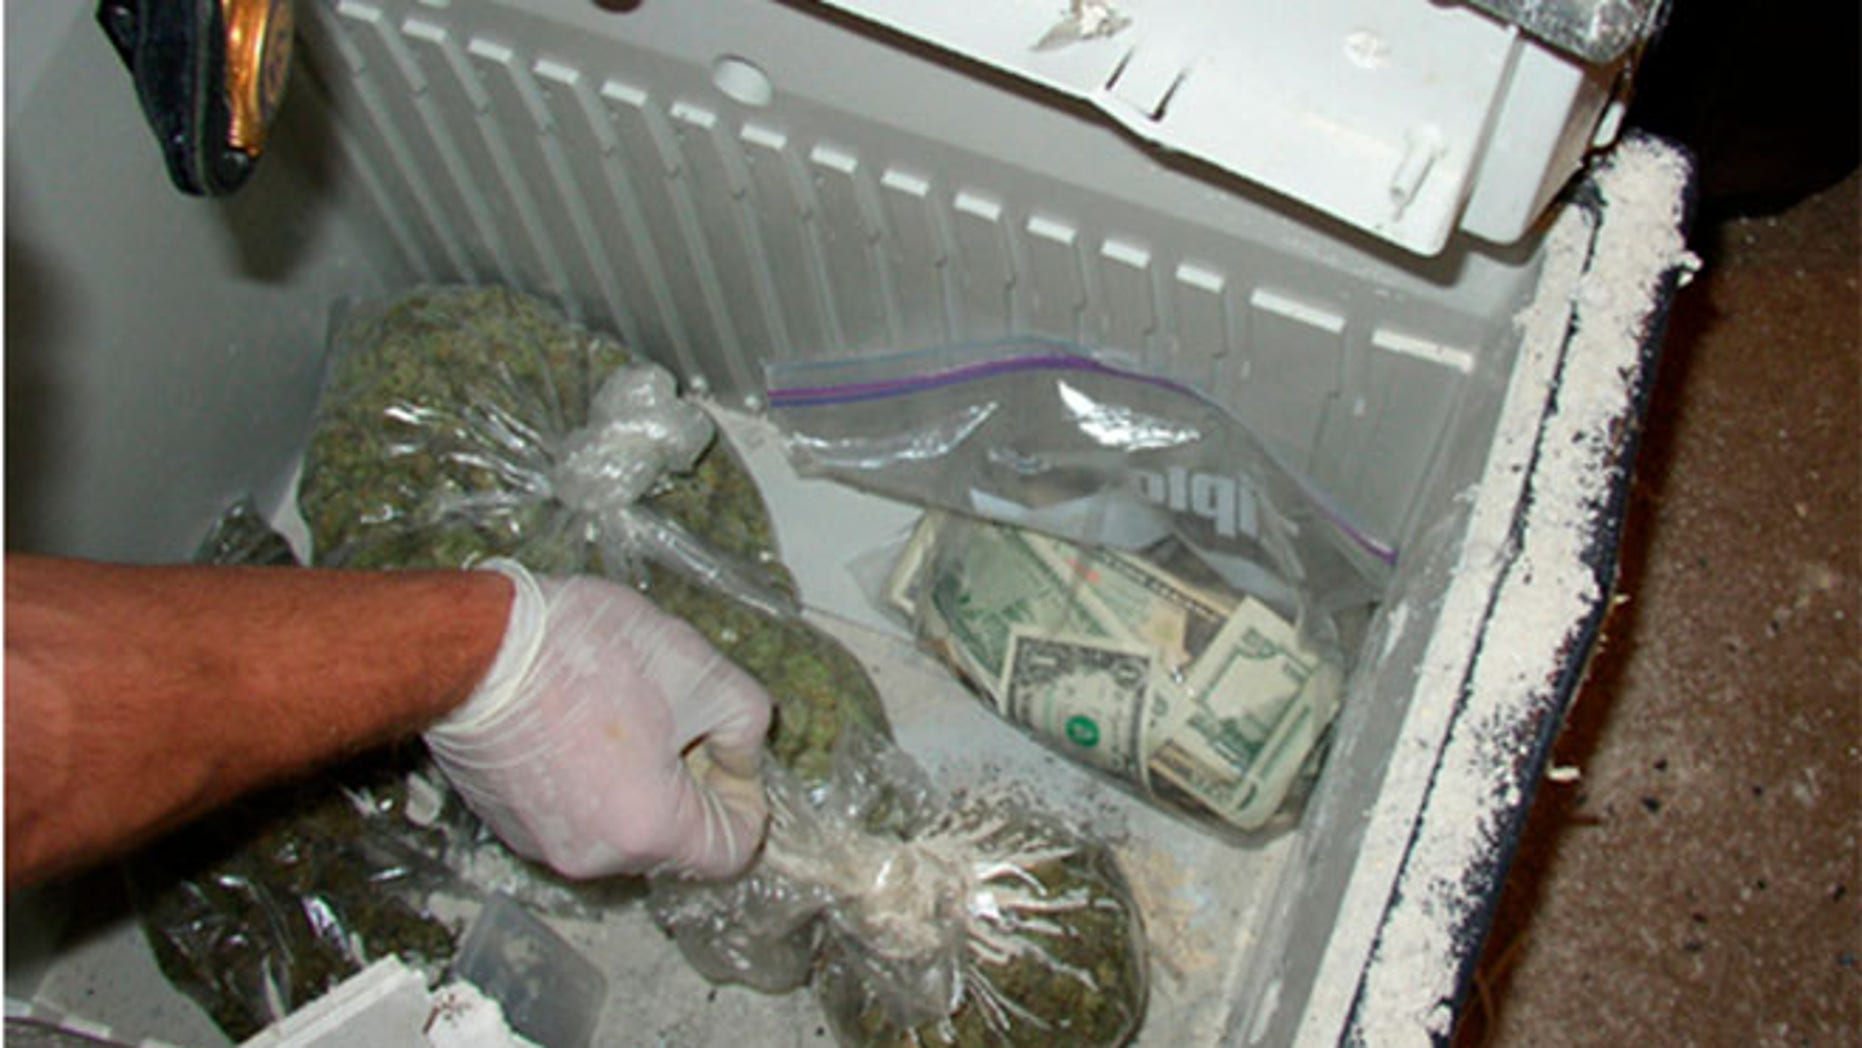 FILE: Arizona law enforcement agencies seized nearly $200M in personal property over the span of the past five years.